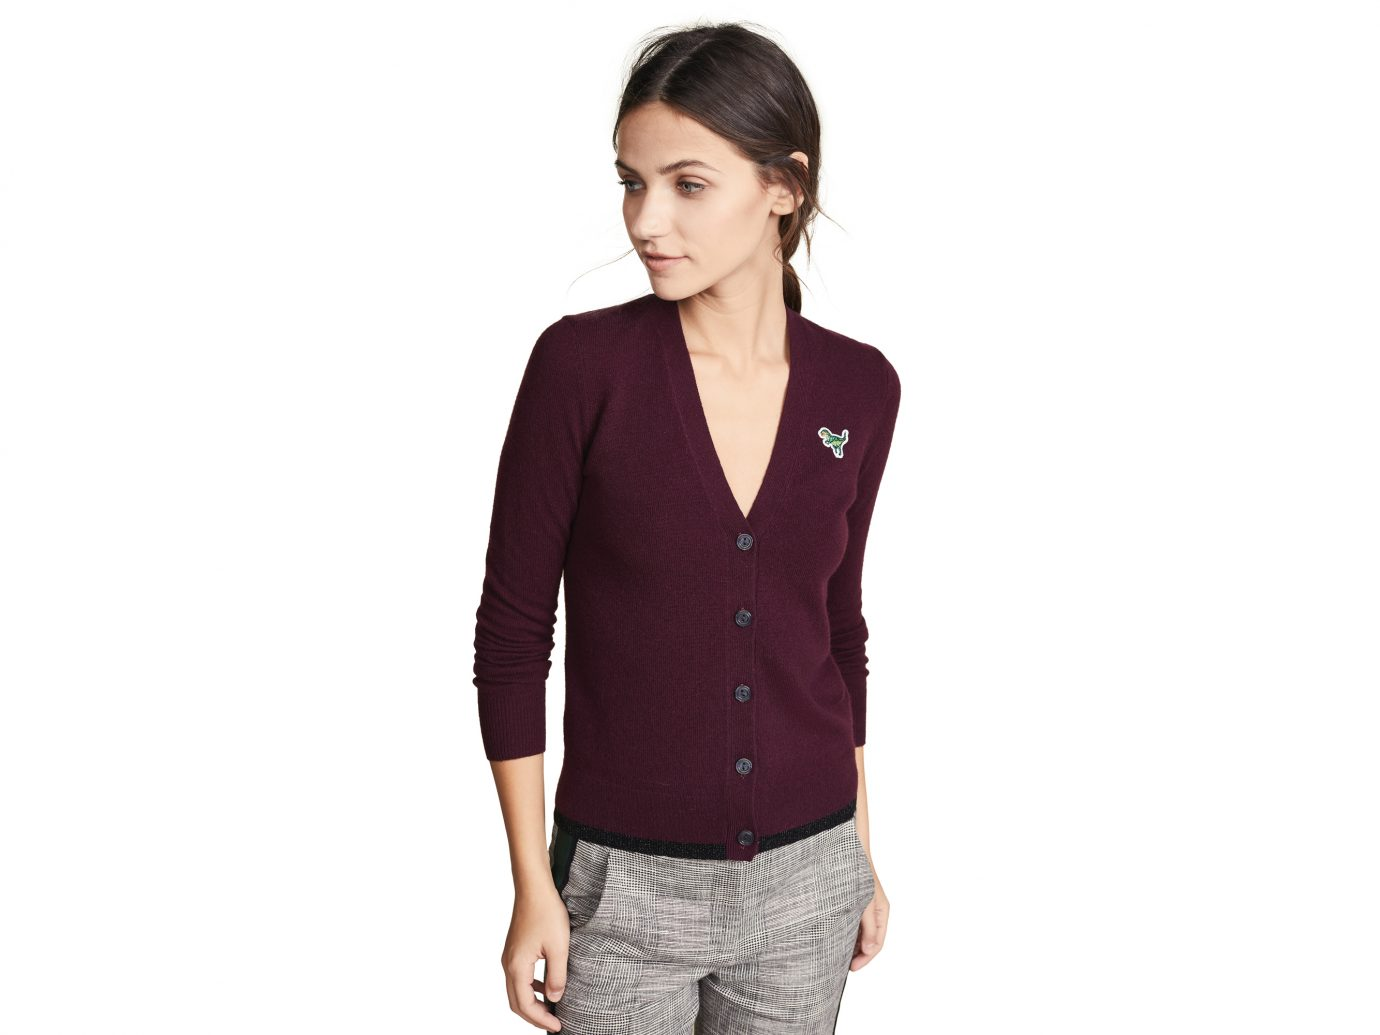 Coach 1941 Cardigan with Rexy Patch